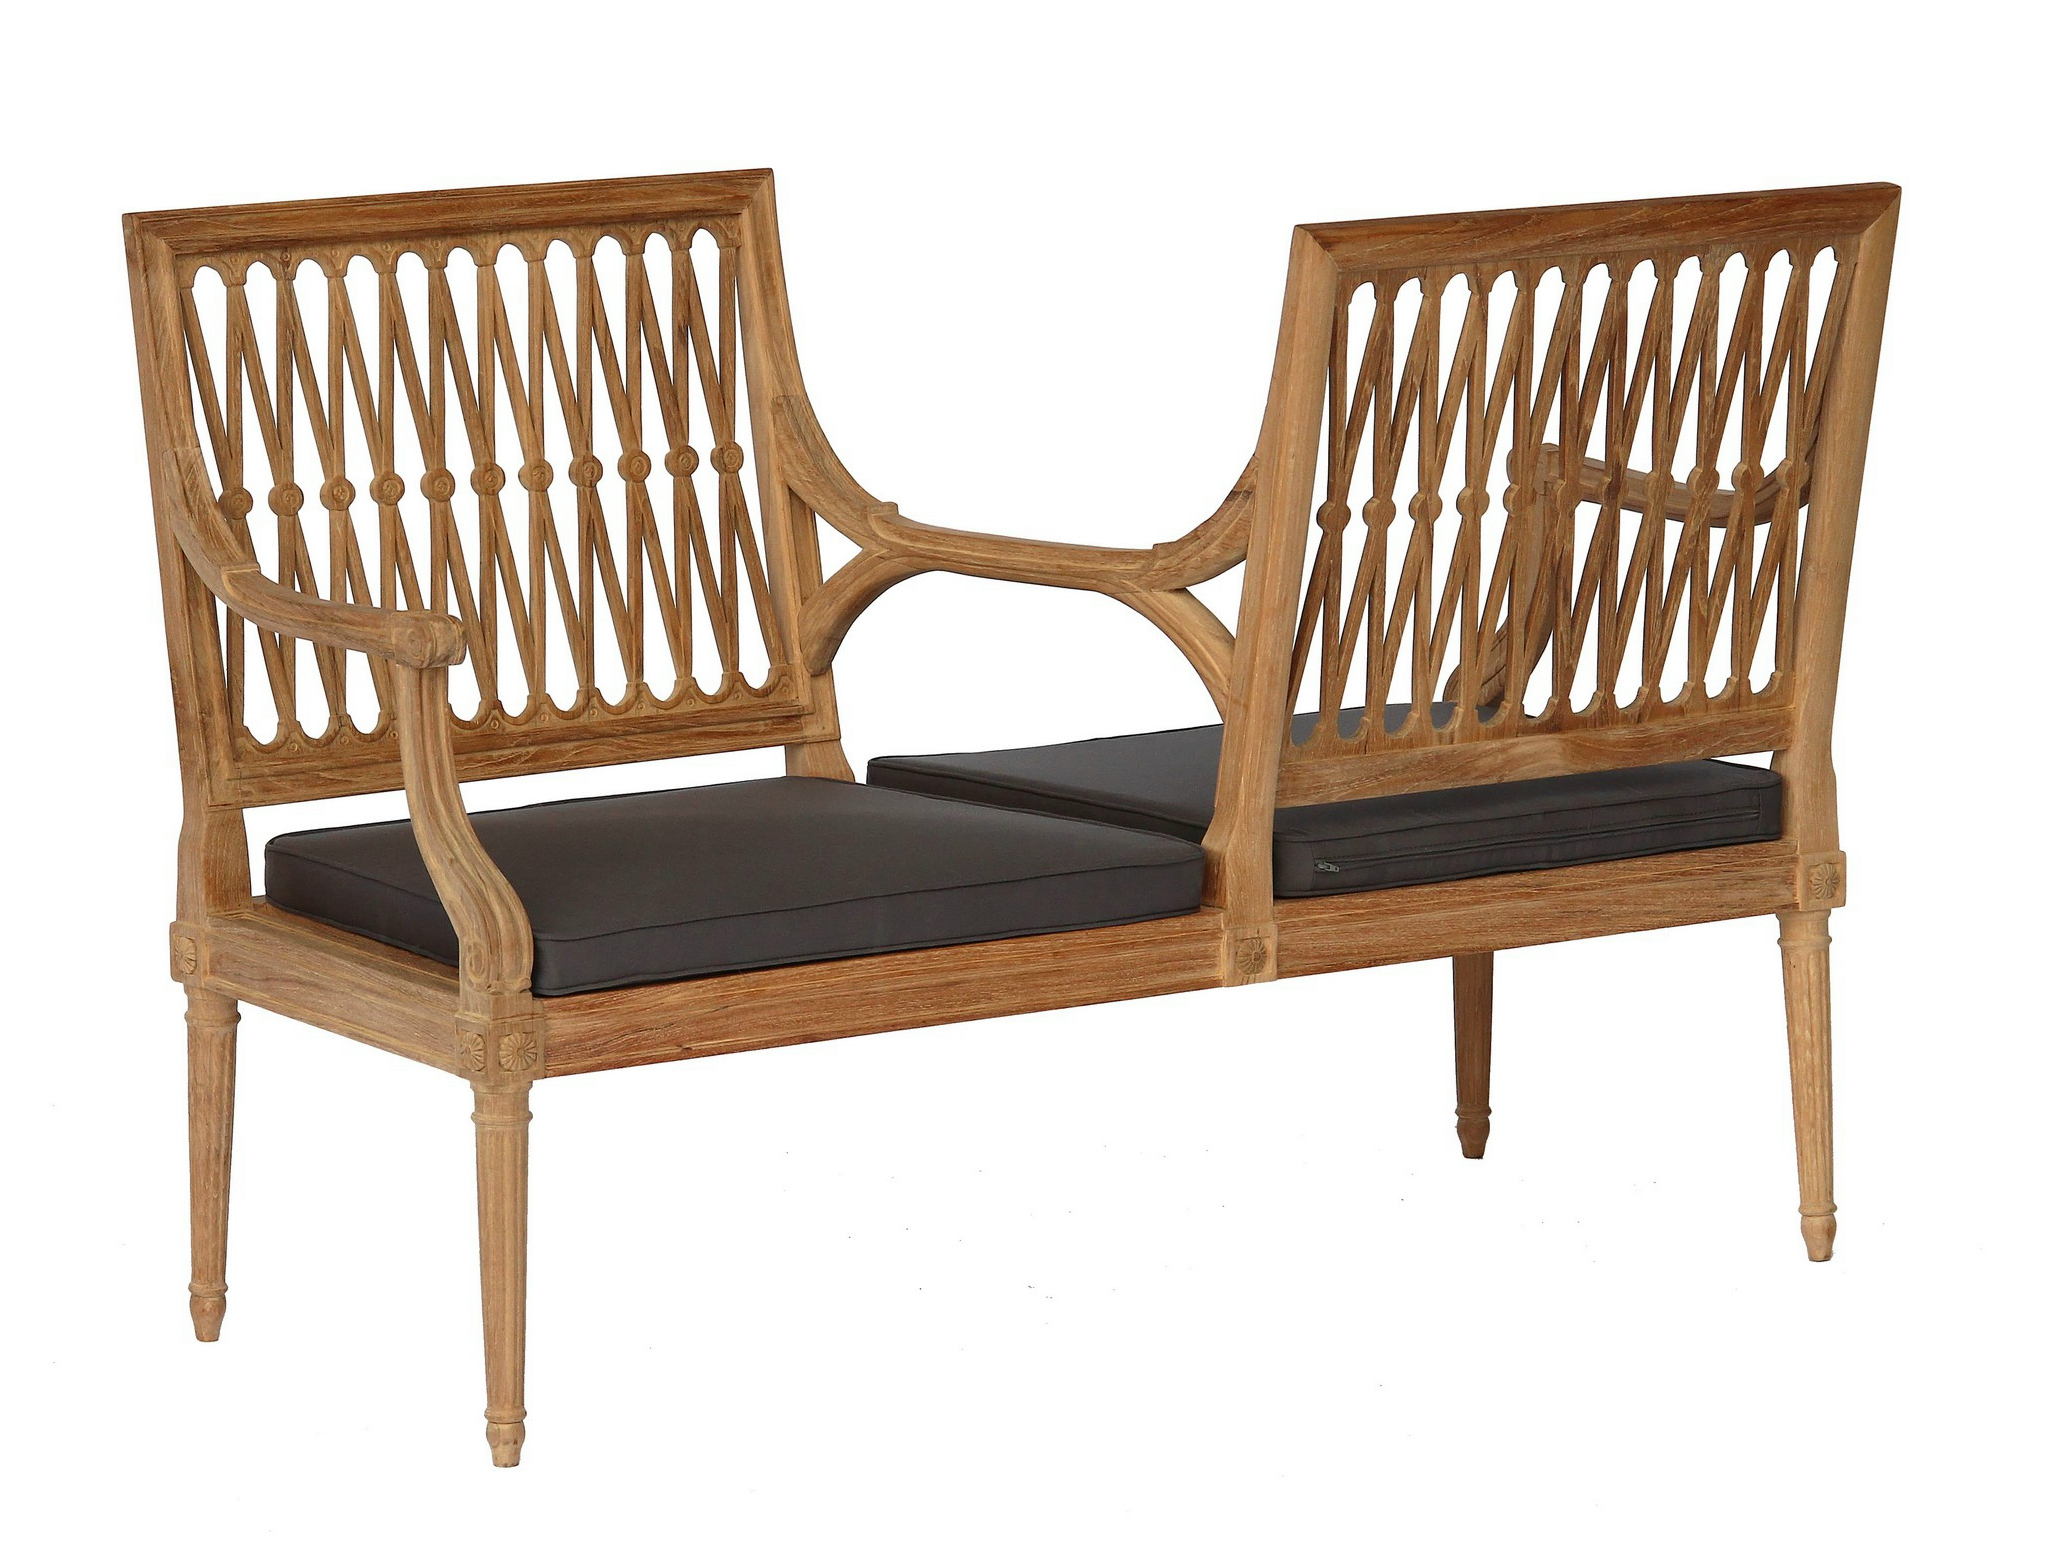 2 Seater Teak Garden Sofa Serpentine Collection By Astello Design Dominique Malcor Thierry